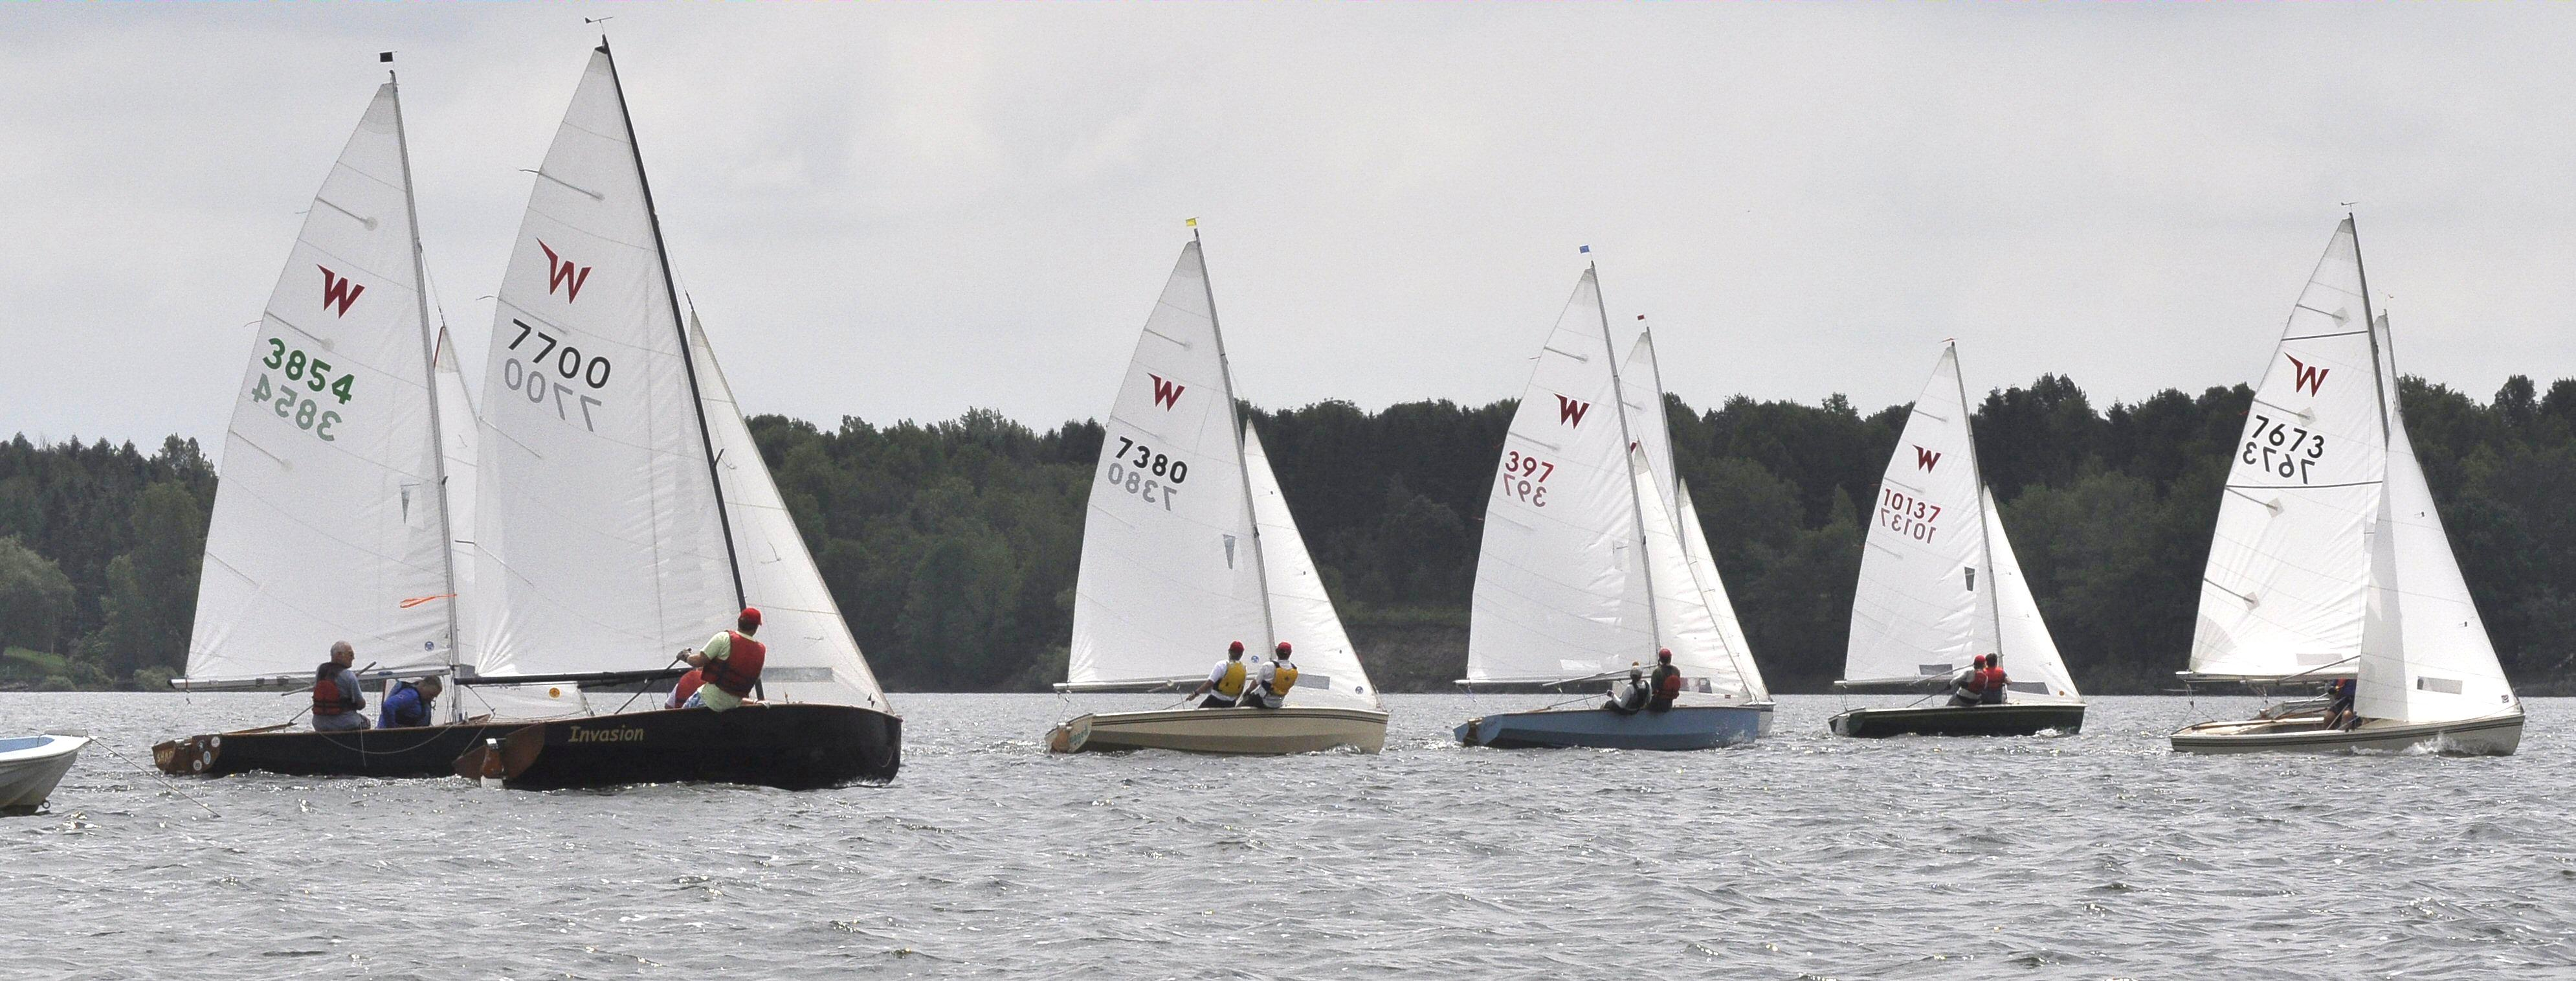 Conestoga Sailing Club